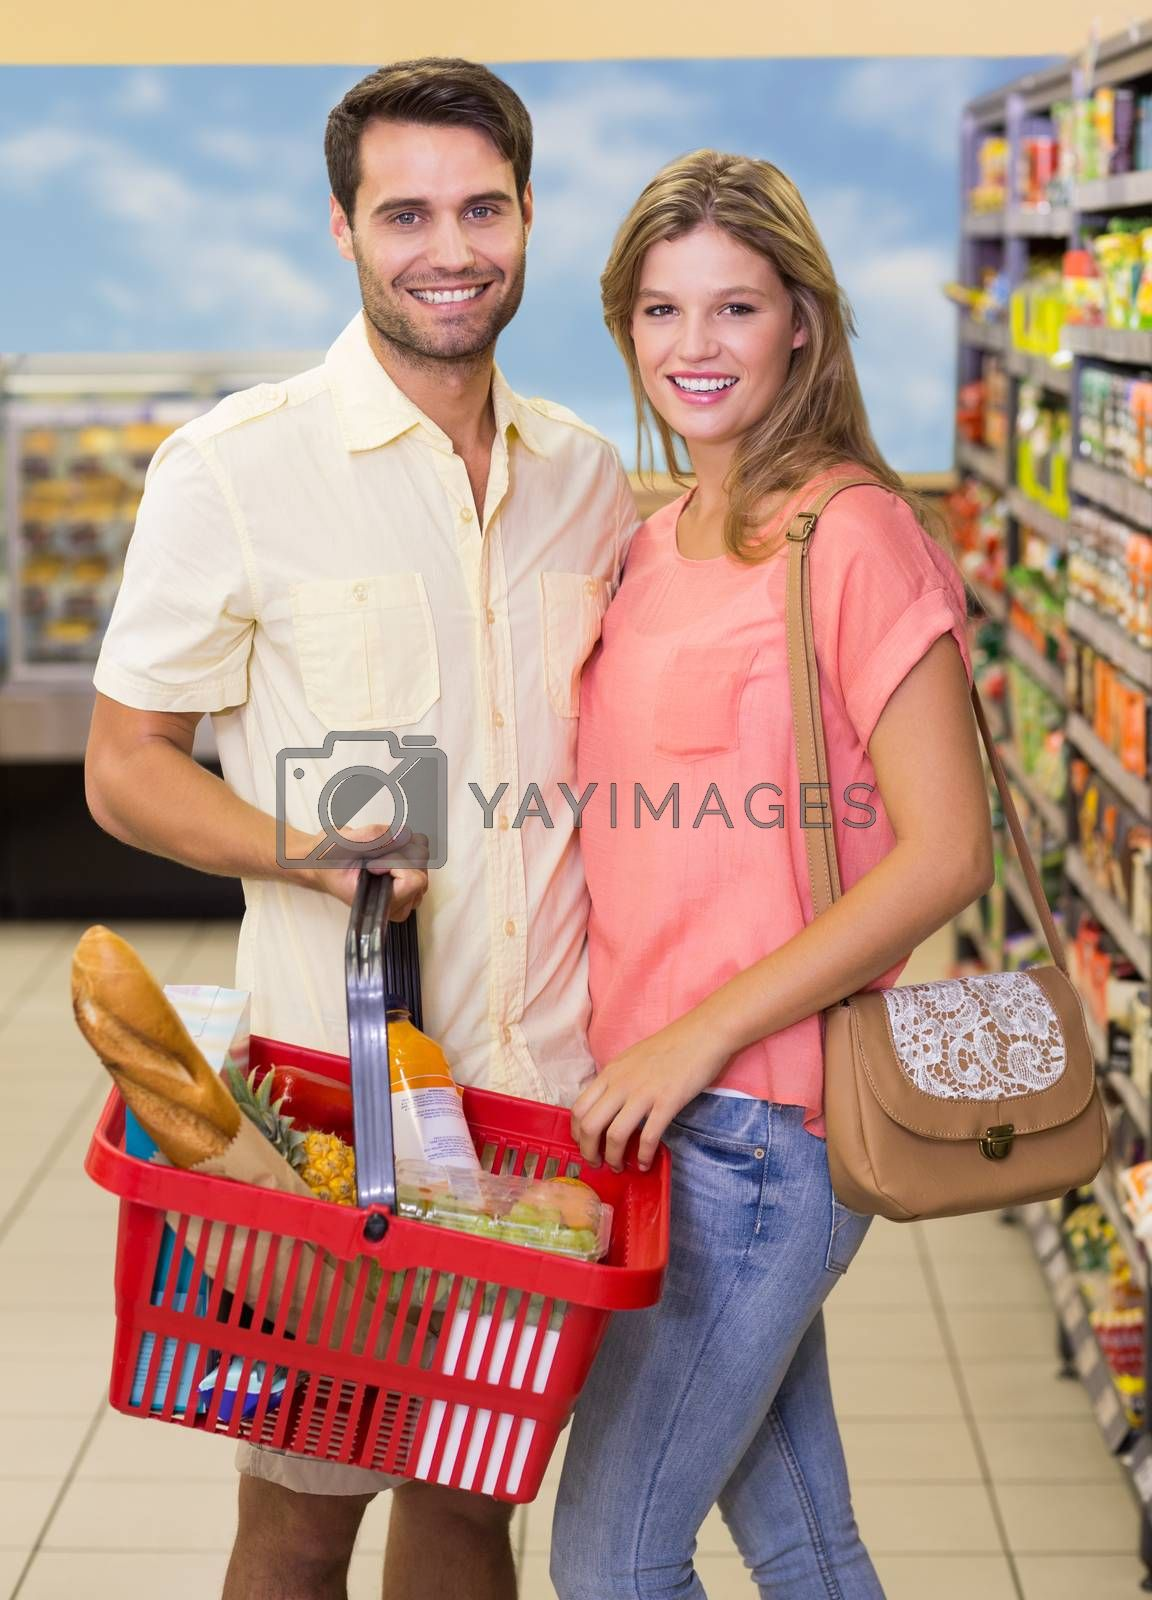 Royalty free image of Portrait of smiling bright couple buying food products using shopping basket by Wavebreakmedia